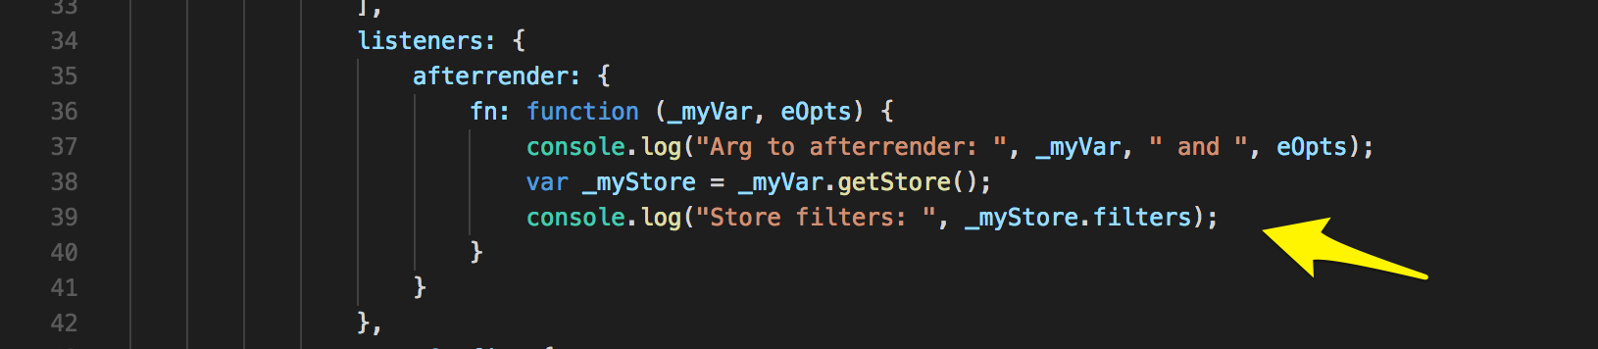 Debug print to console store config's filters.